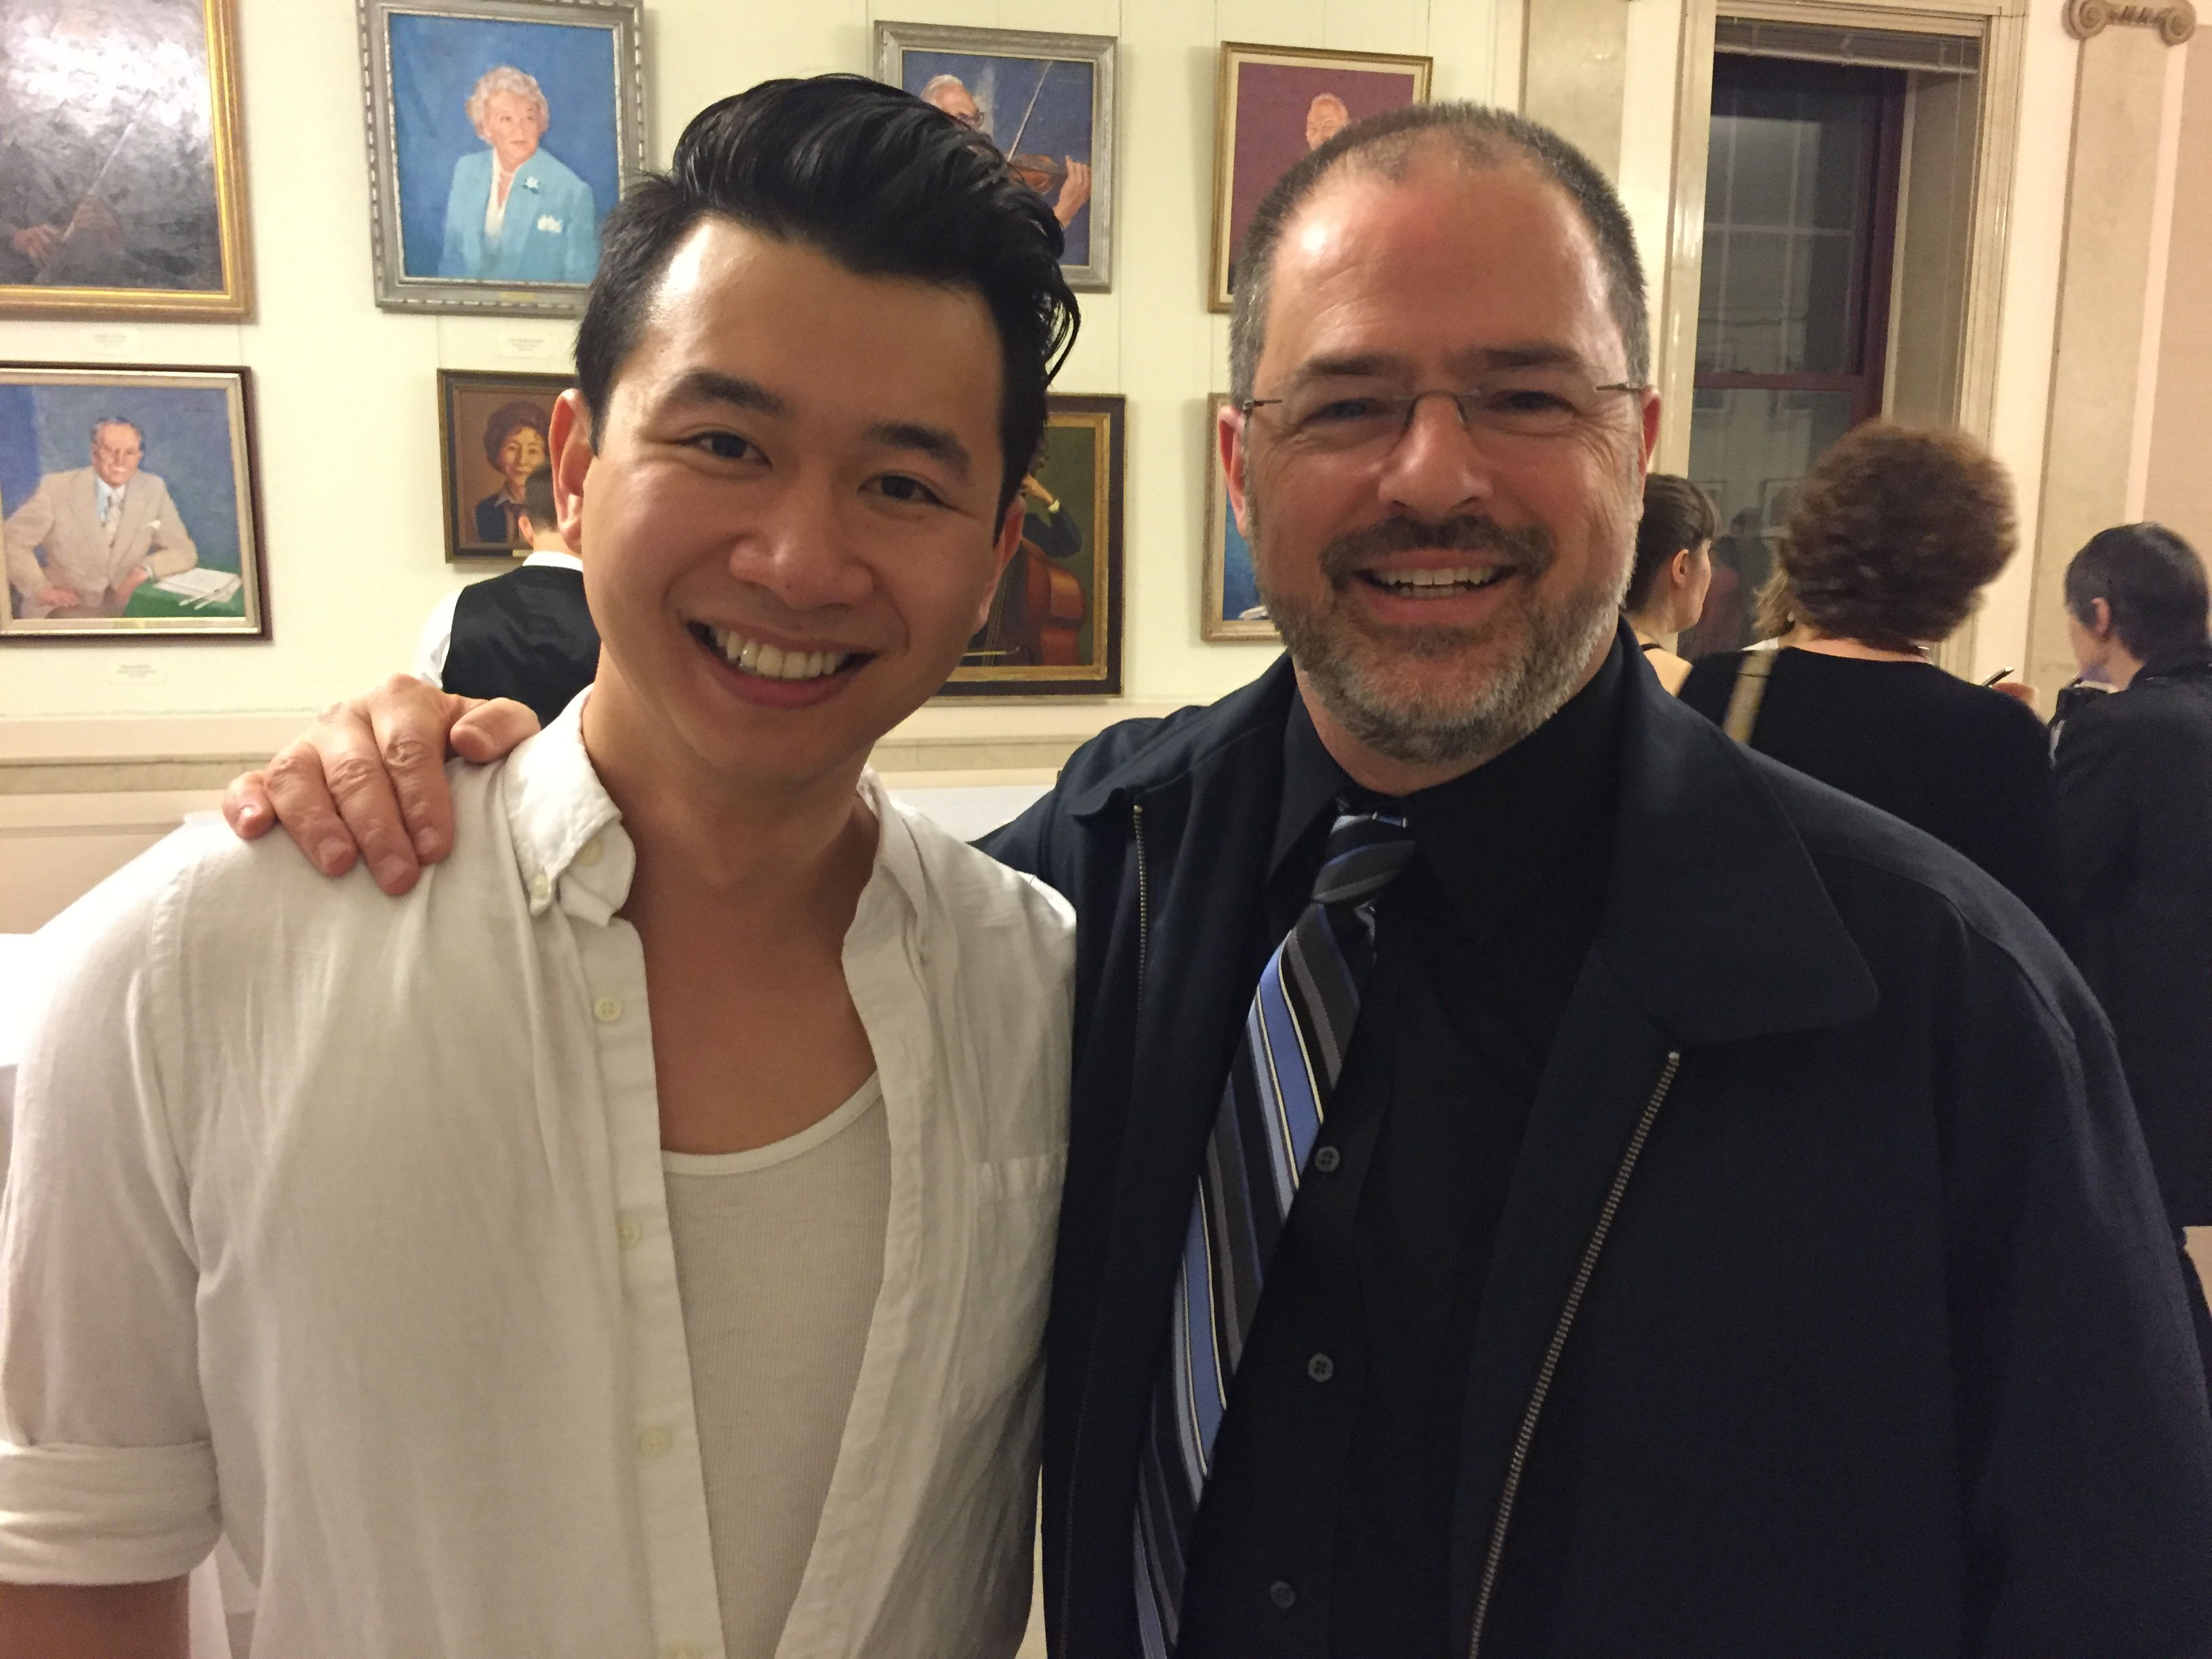 Brian Vu, Pittsburgh Opera Resident Artist and first place winner in the 2016 Lotte Lenya Competition, with Pittsburgh Opera Head of Music Glenn Lewis, at the final round of the competition in Rochester, NY.